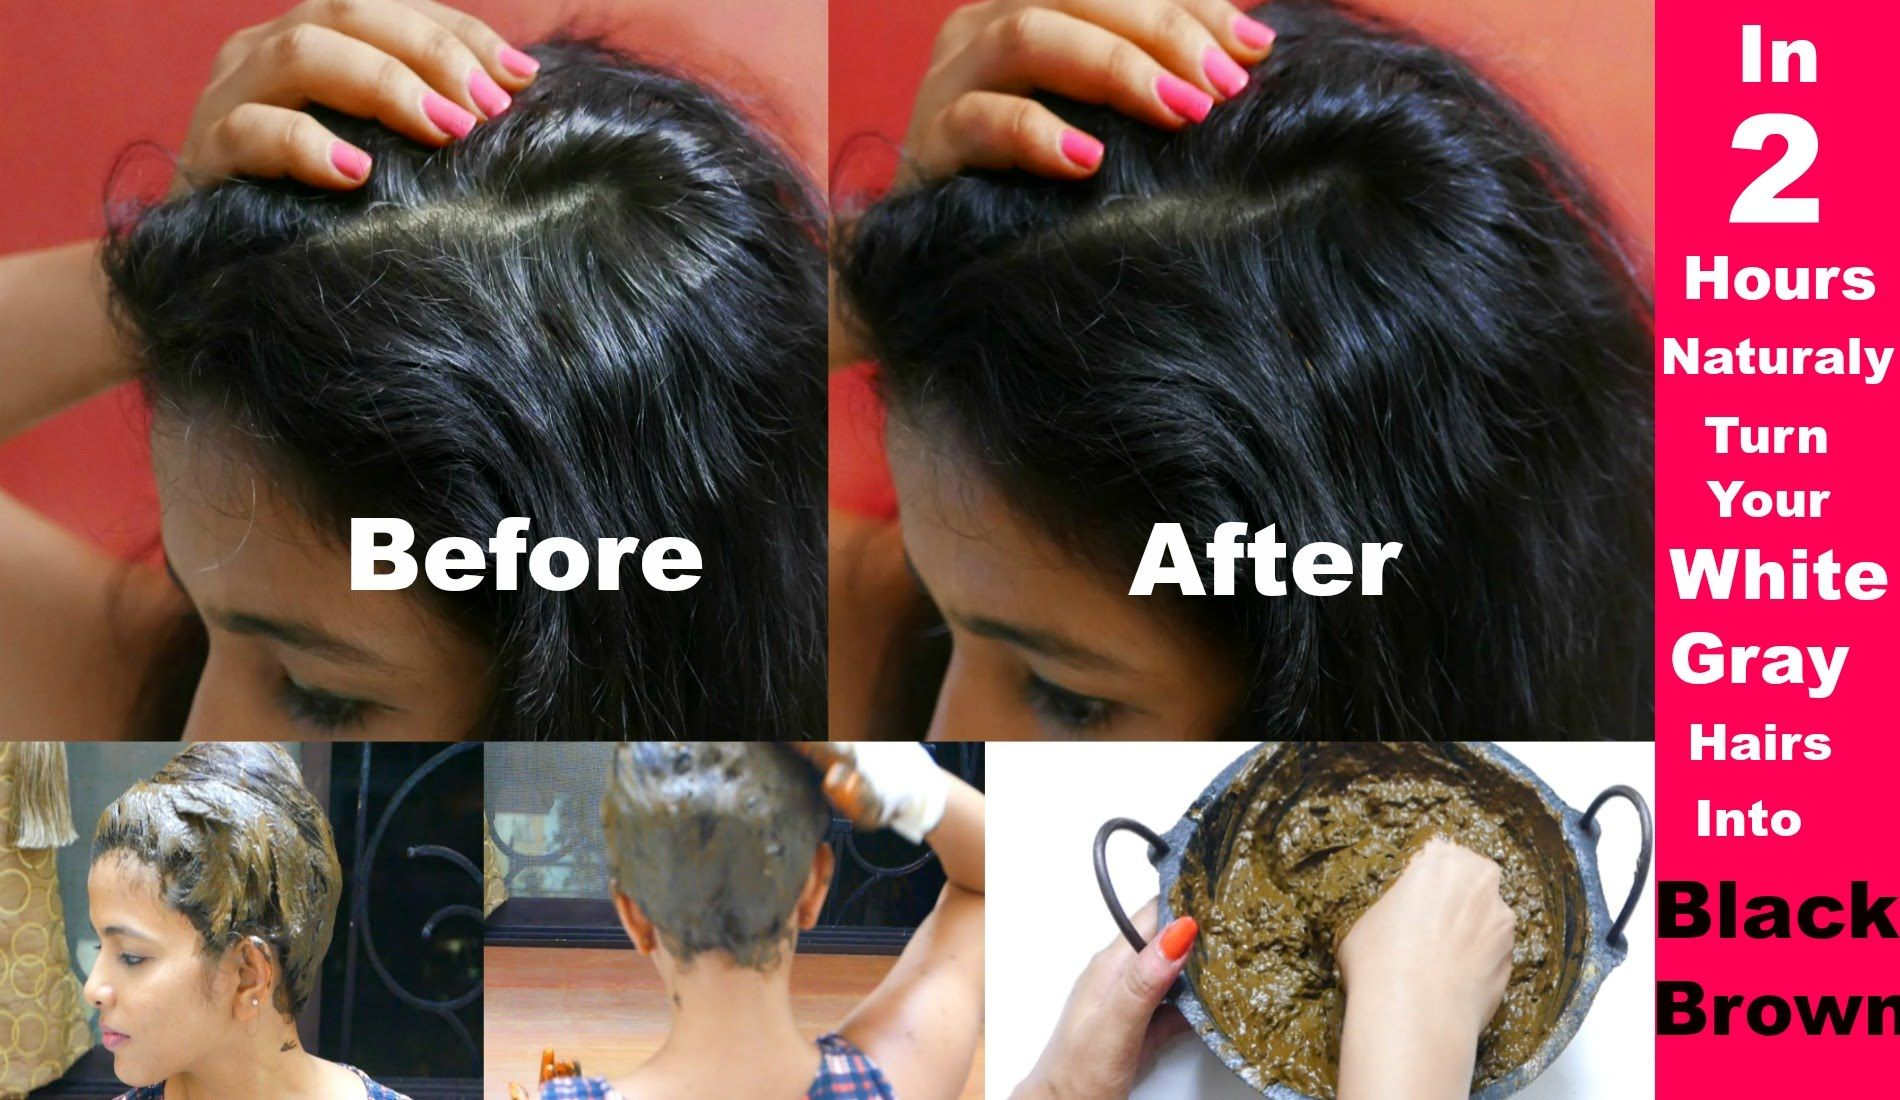 aff55c4e42b6f Turn Grey/White Hairs To Brown Naturally: How To Apply Henna/Mehendi On ..